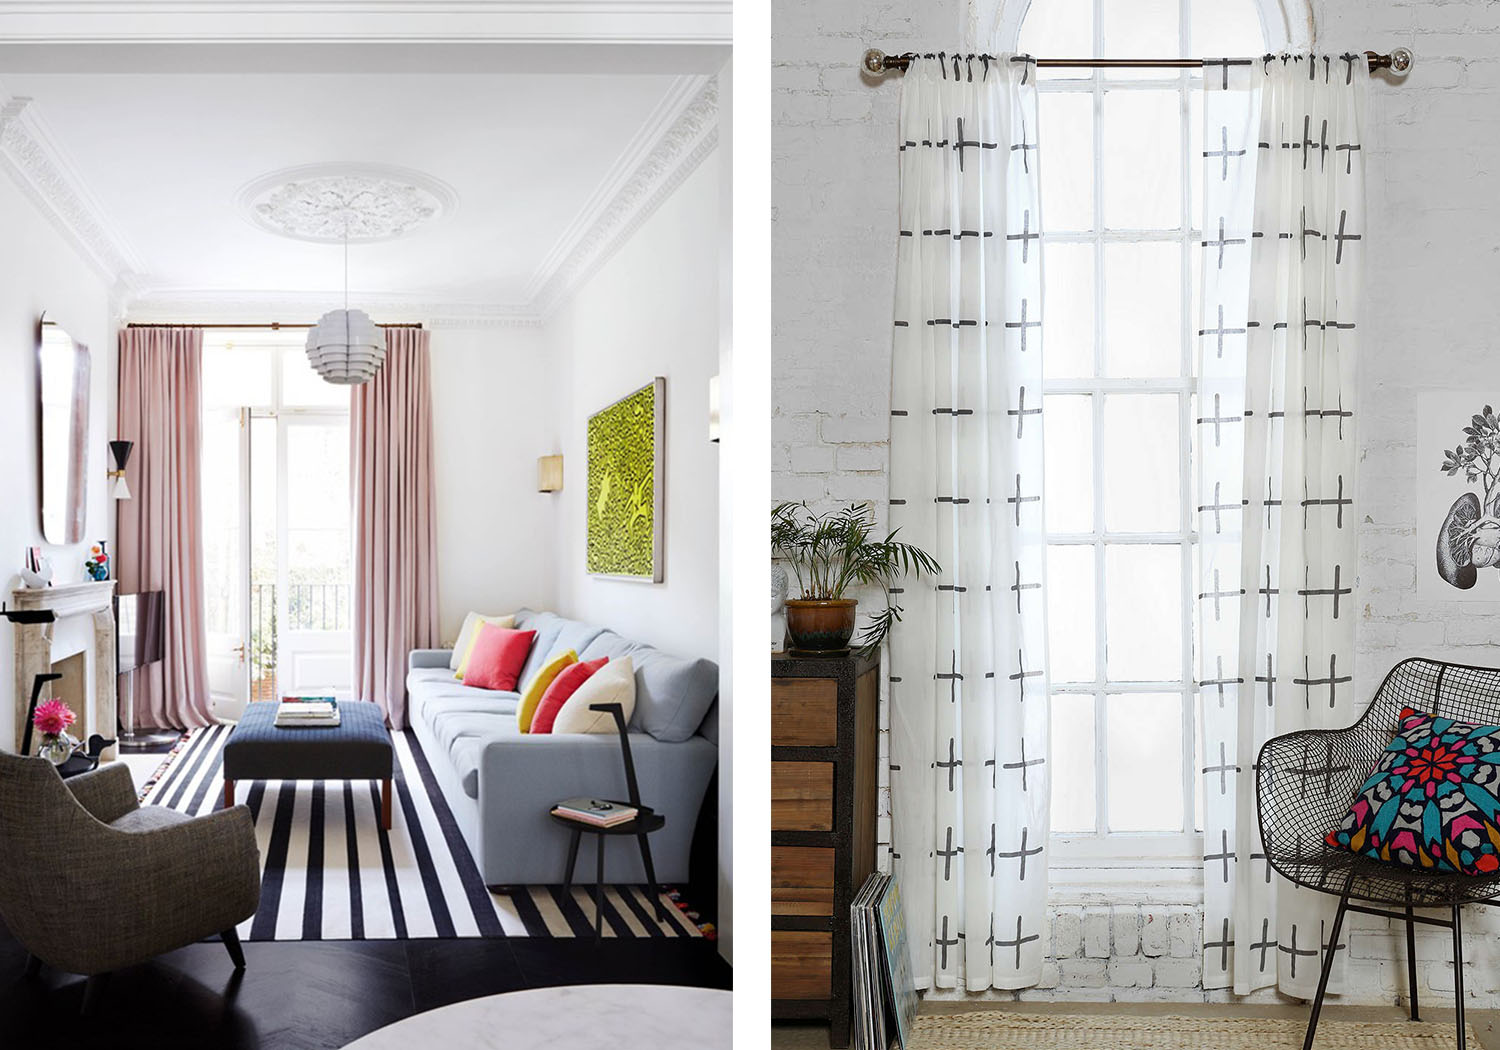 On the left, light pink curtains, vibrant cushions, and a striped rug add texture and style to the living room. On the right, the flowy white curtain is paired with a white brick wall.